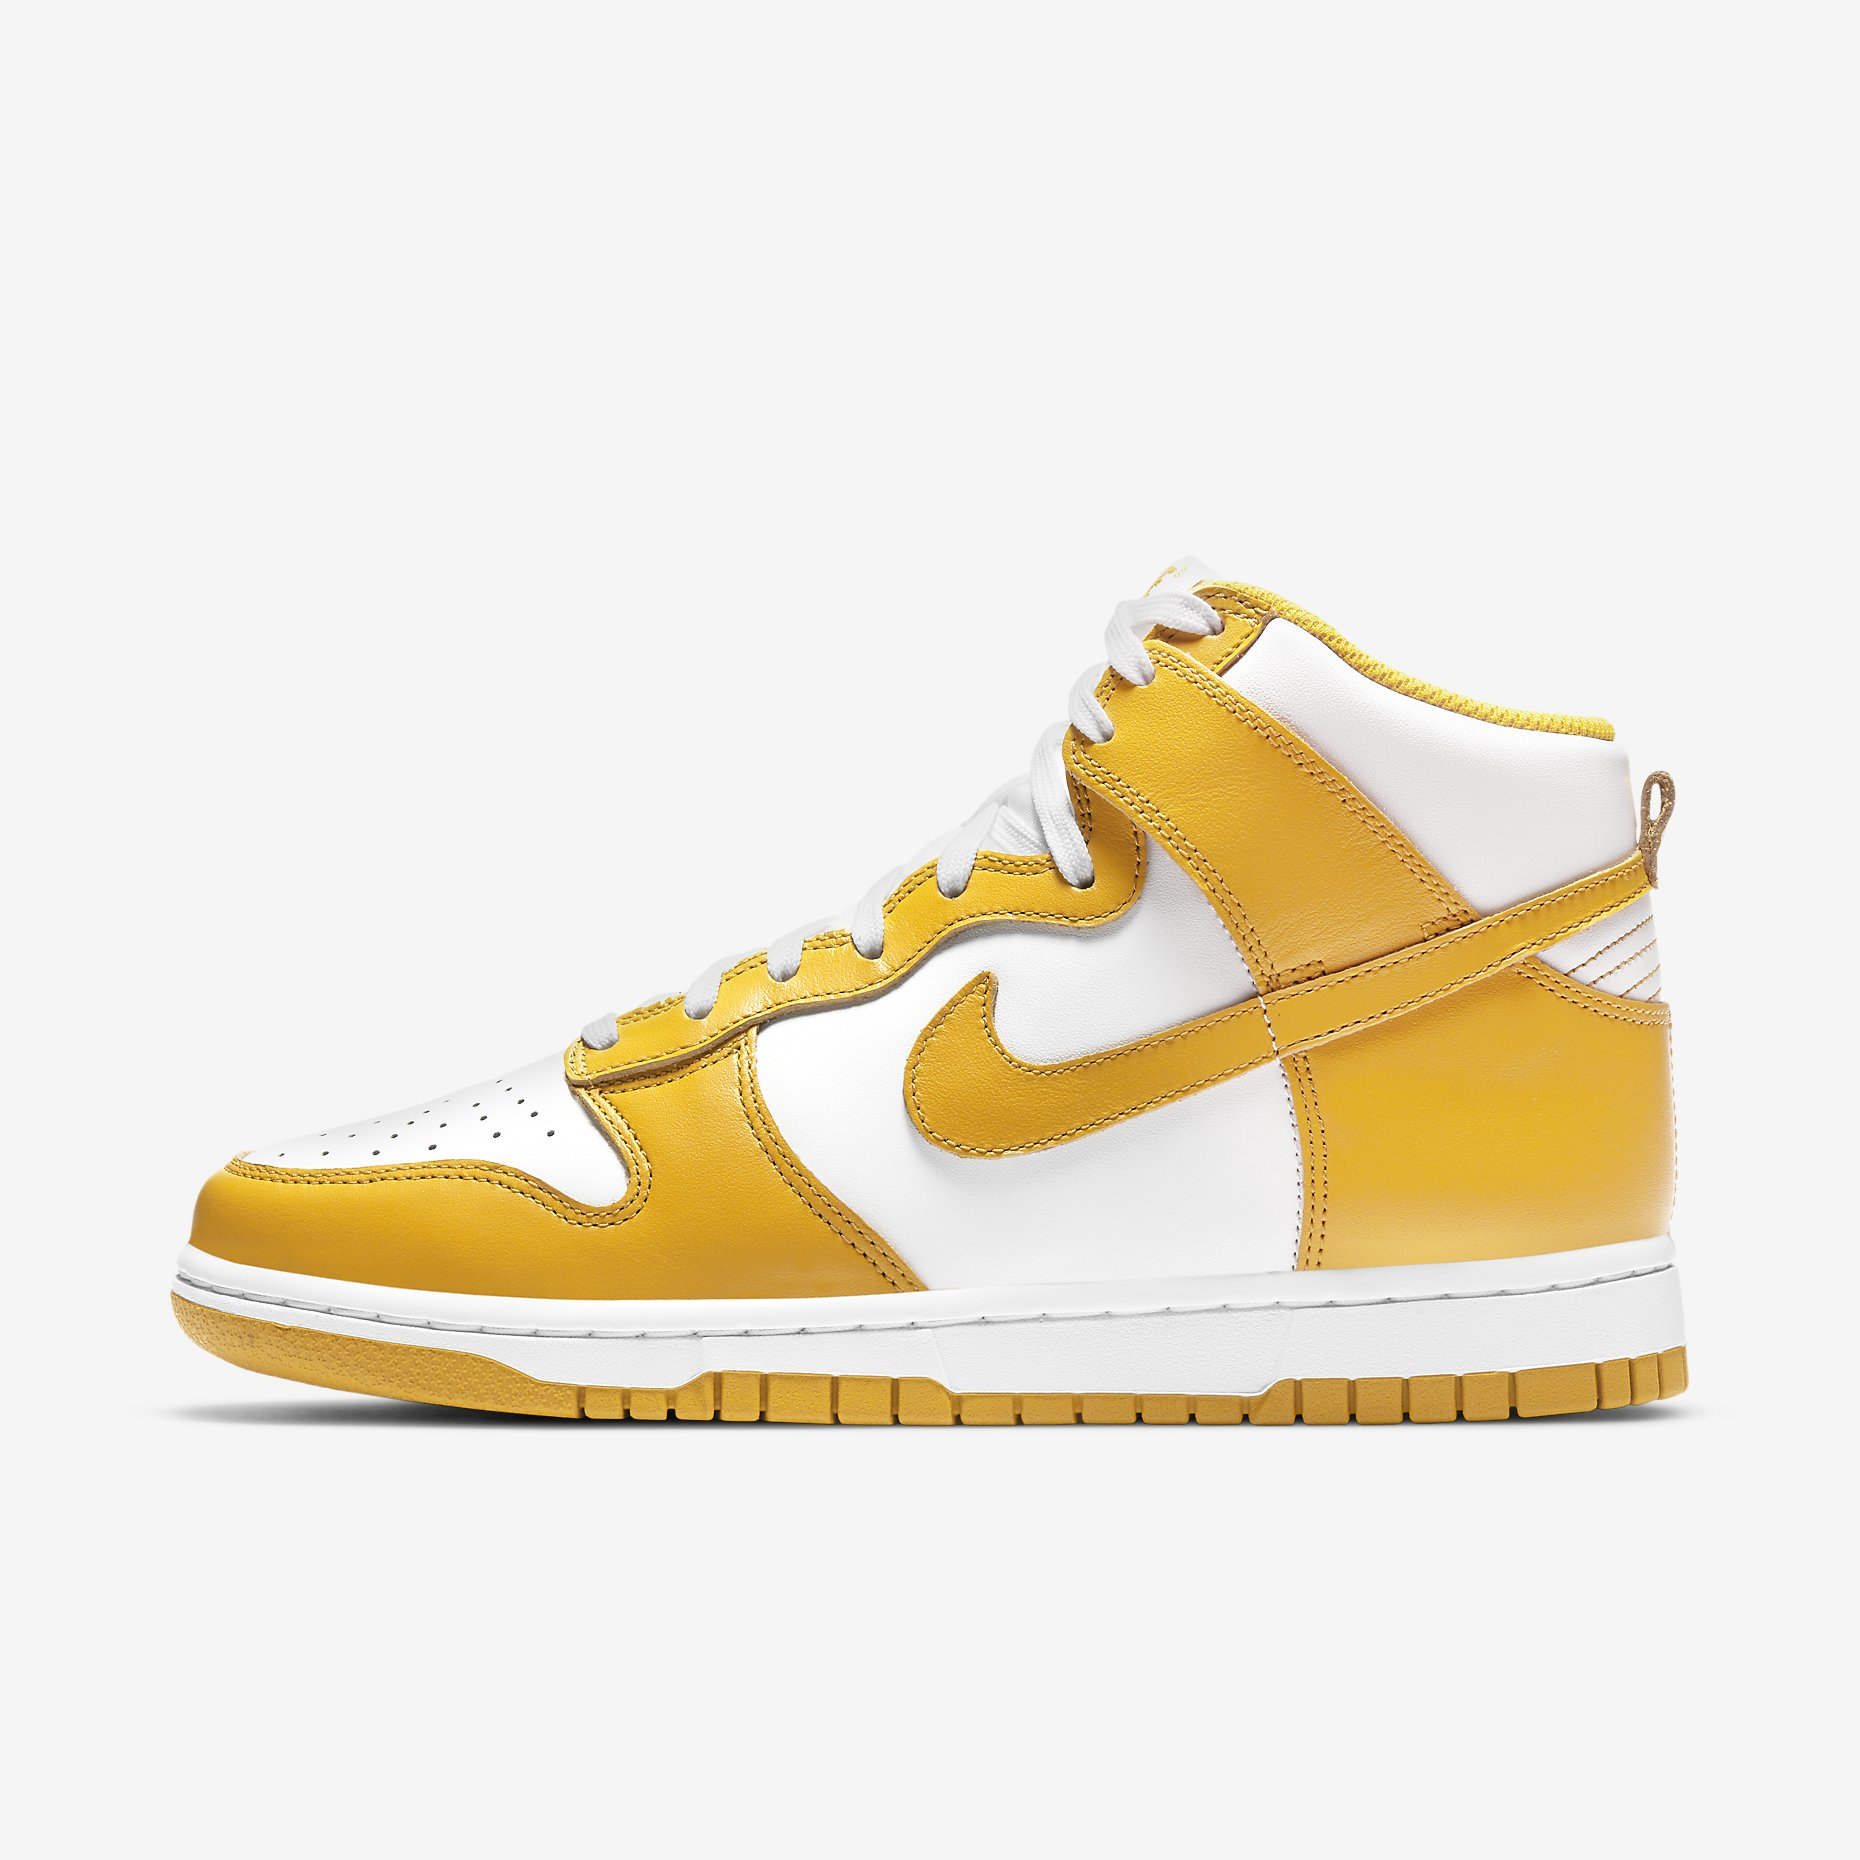 Women's Nike Dunk High 'Dark Sulphur'}